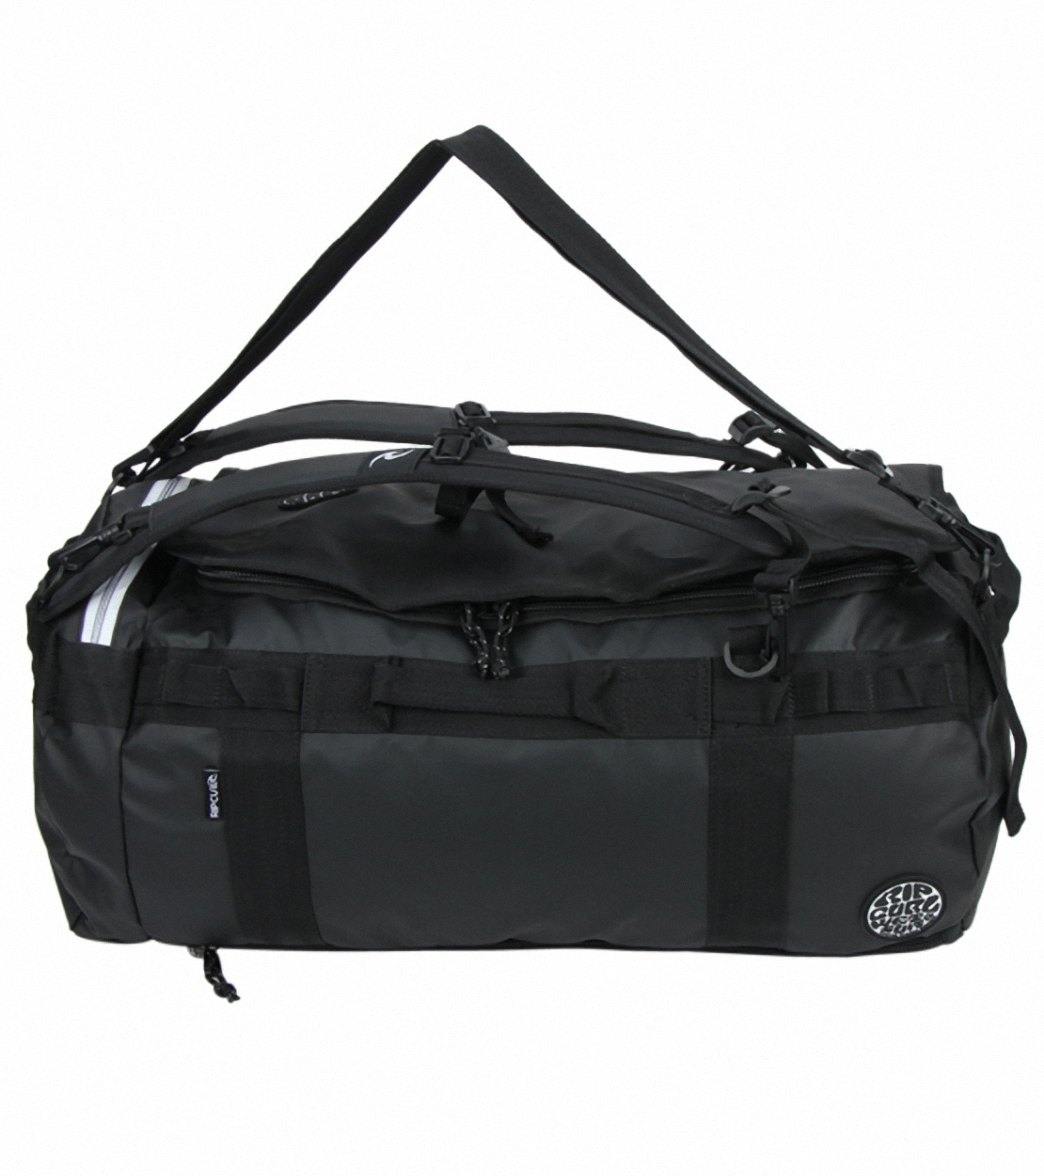 56cecc9aa458 Rip Curl Wetsuit Series Search Duffle Bag at SwimOutlet.com - Free Shipping